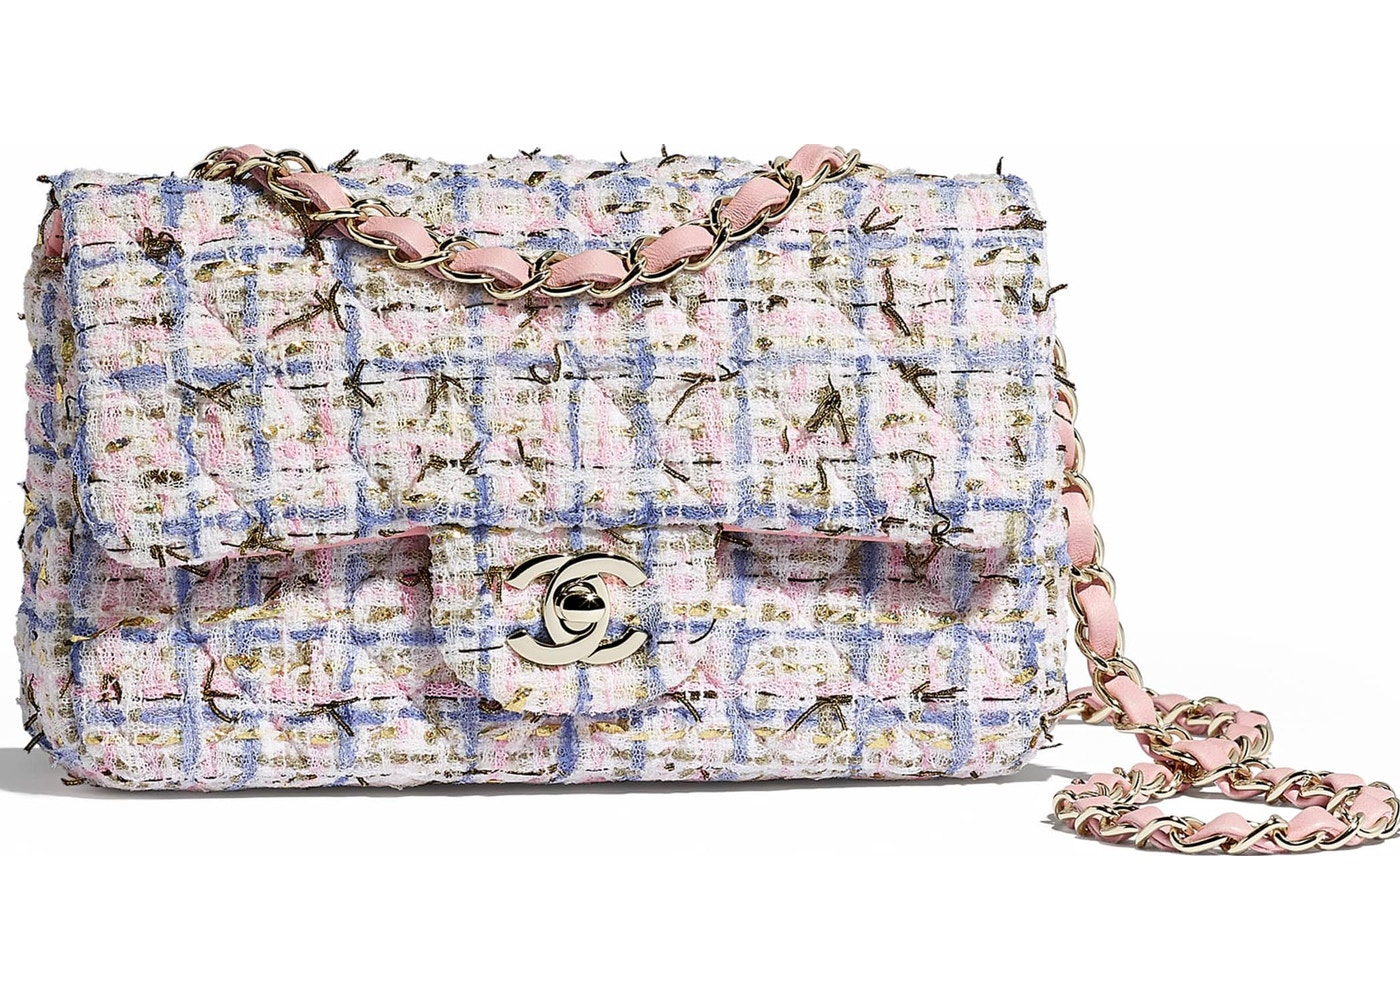 04bdf9189d53 Chanel Flap Bag Tweed Gold-tone Mini Blue Pink